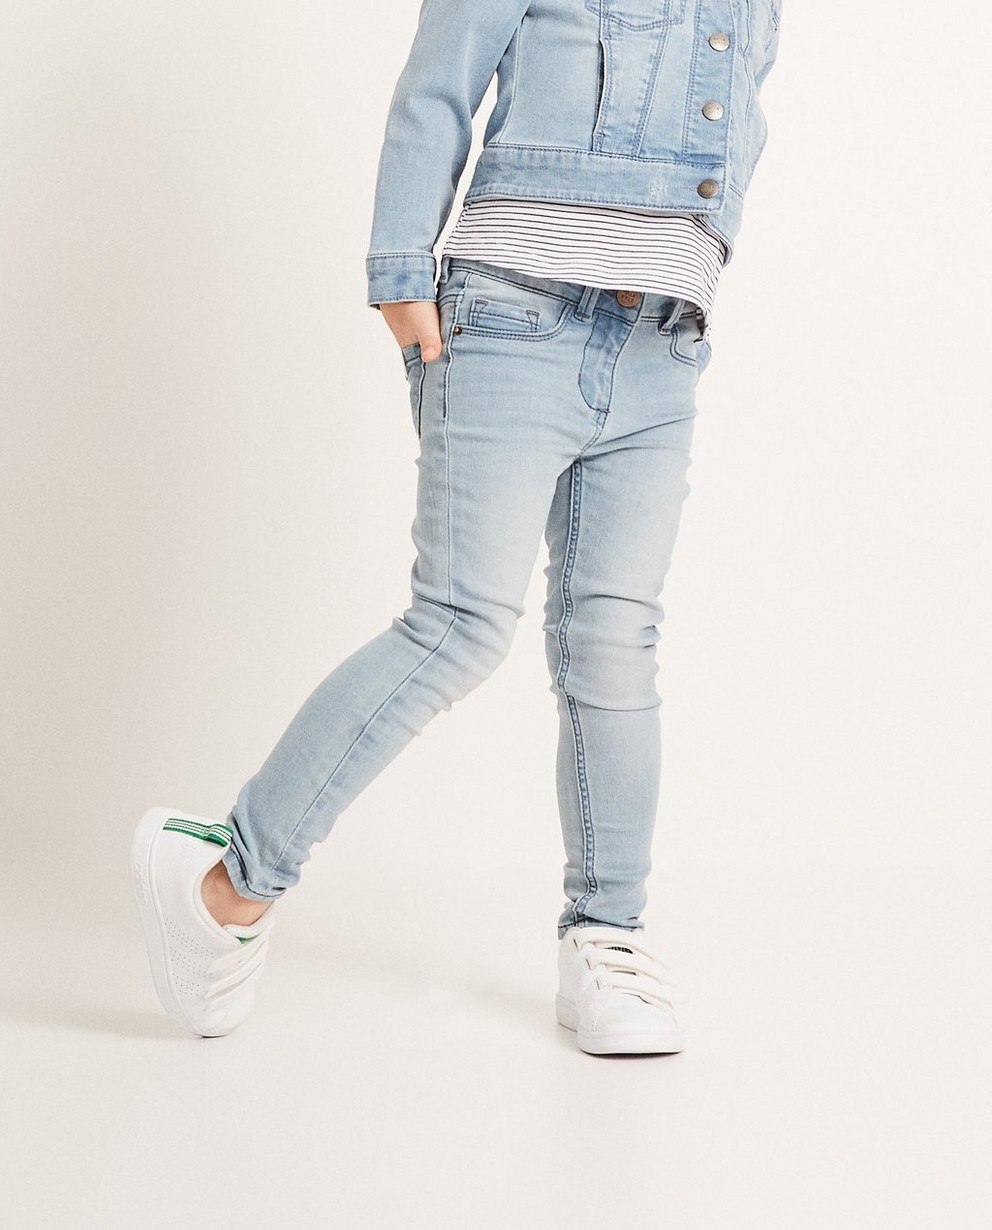 Jeans - light turquise - Jeans skinny MARIE, 2-7